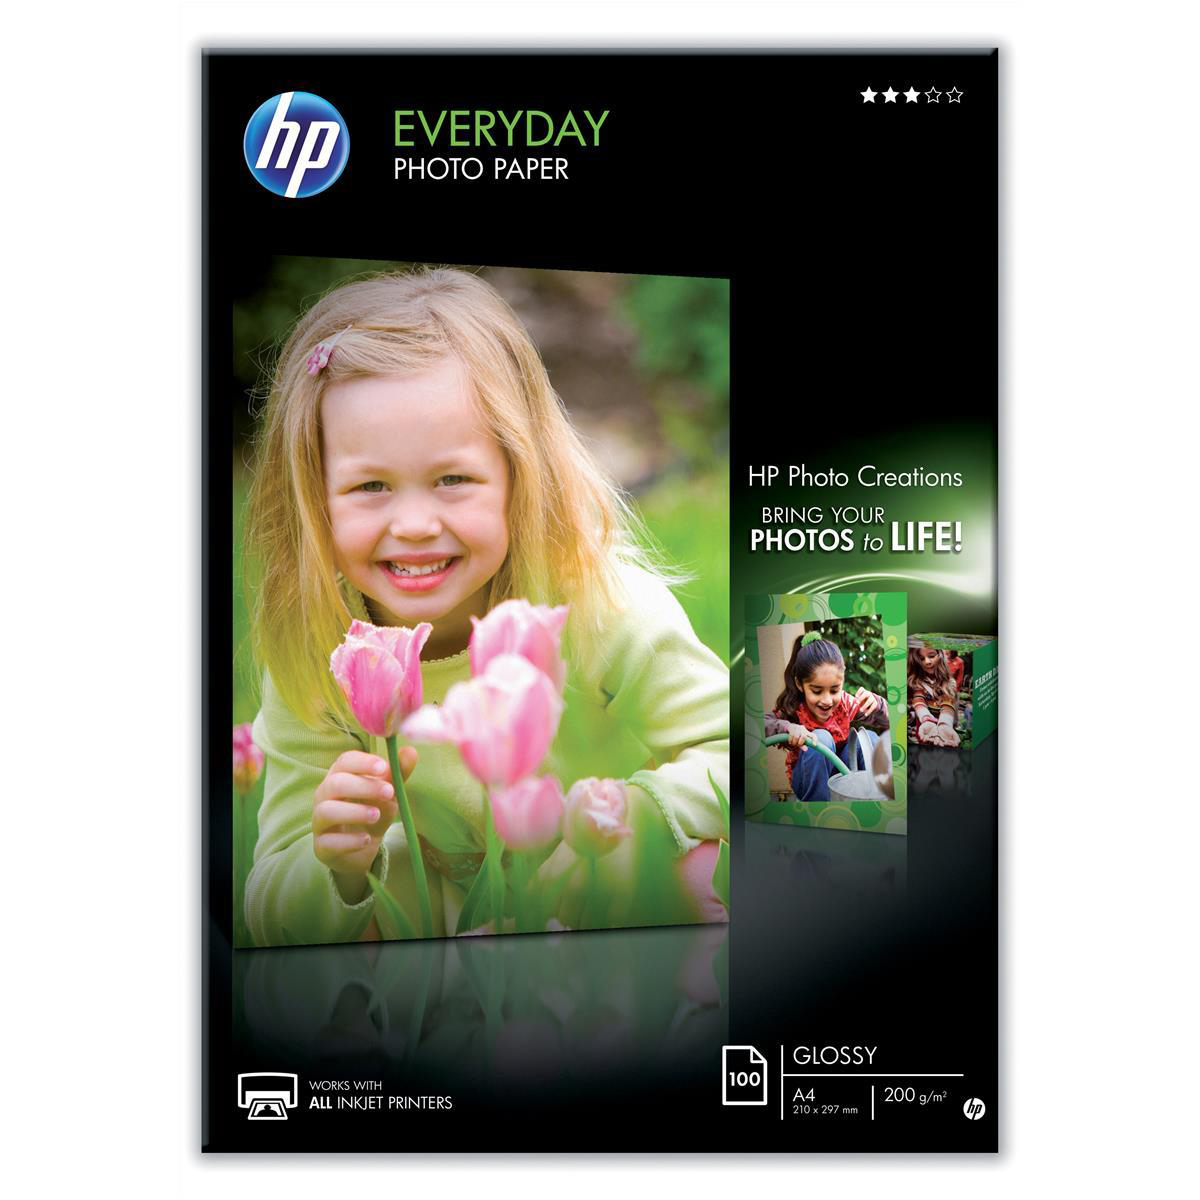 Photo Paper Hewlett Packard HP Everyday Photo Paper Glossy 200gsm A4 Ref Q2510A 100 Sheets